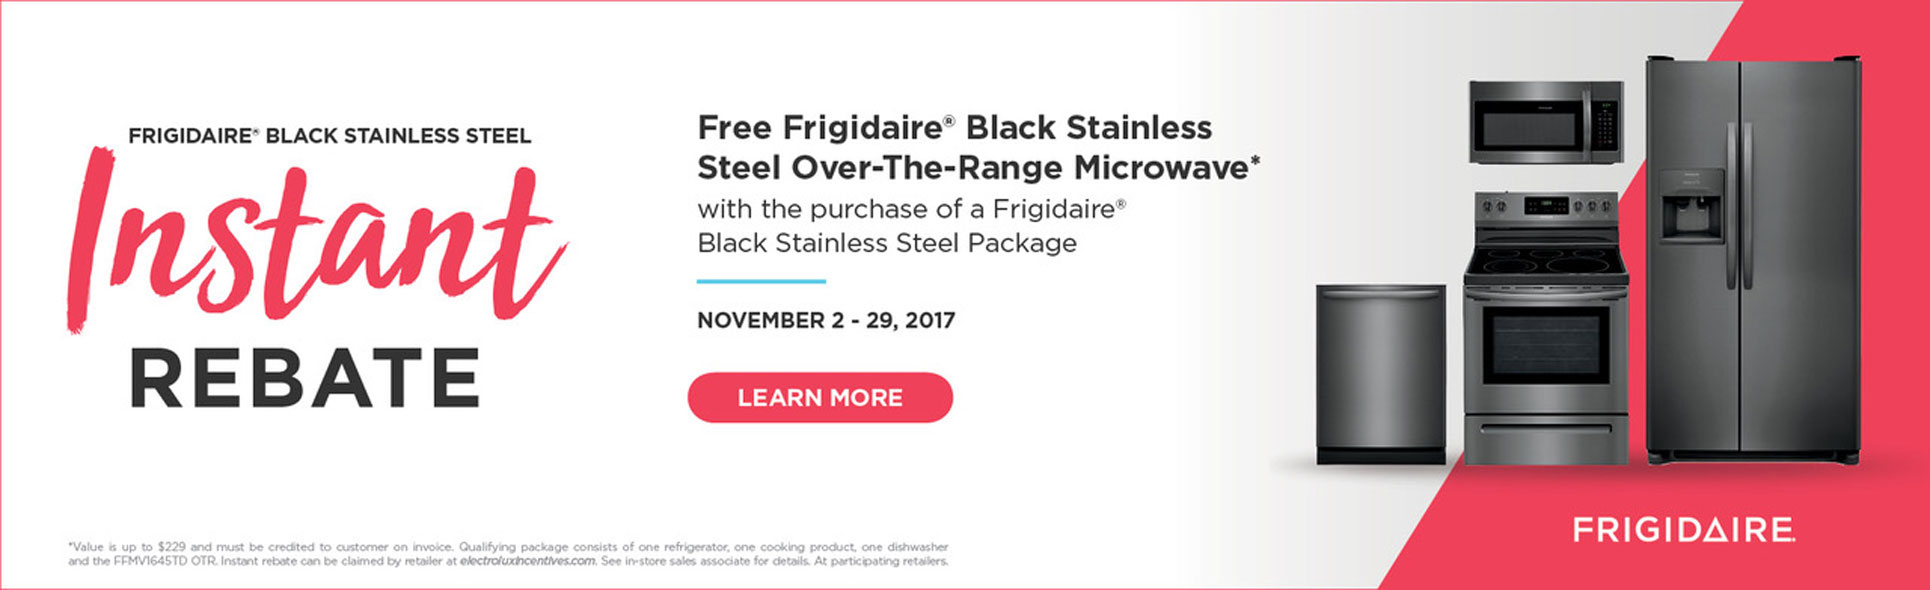 Frigidaire Black Stainless Appliance on Sale